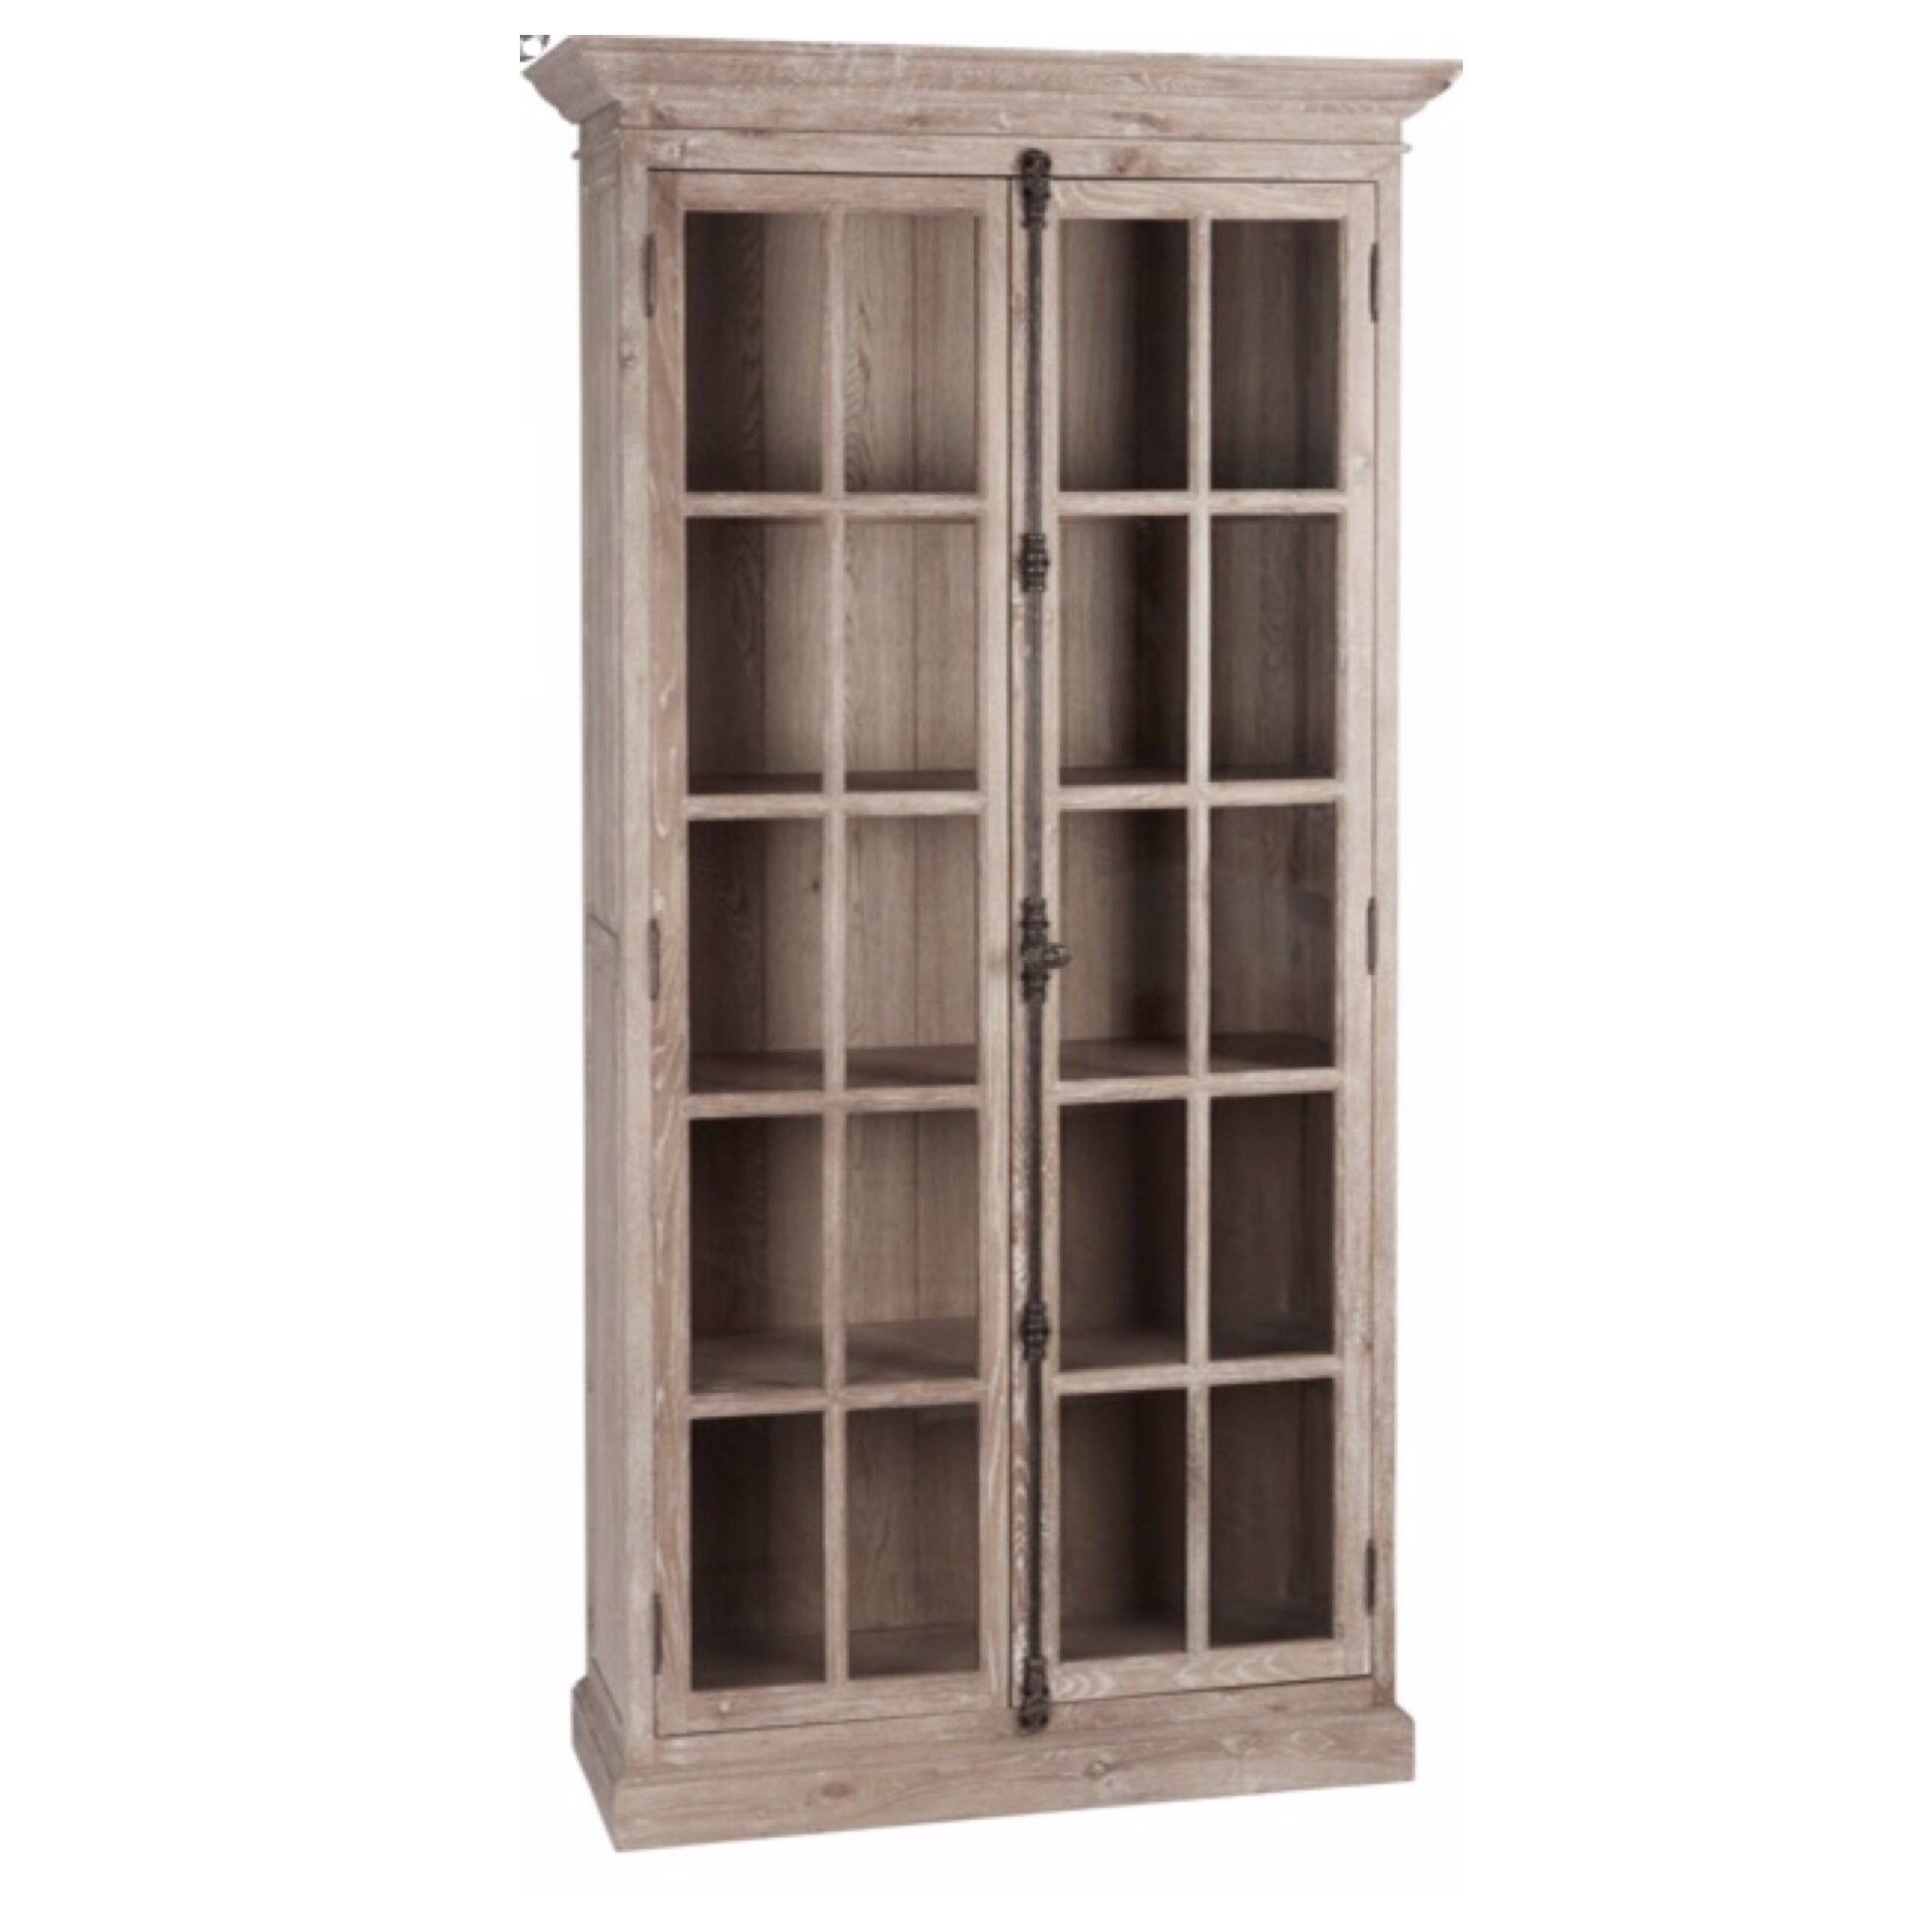 furniture shelf storages photos gallery in photo of lowes accent attachment bookcases whitewash showing trendy wayborn bookcase at shop